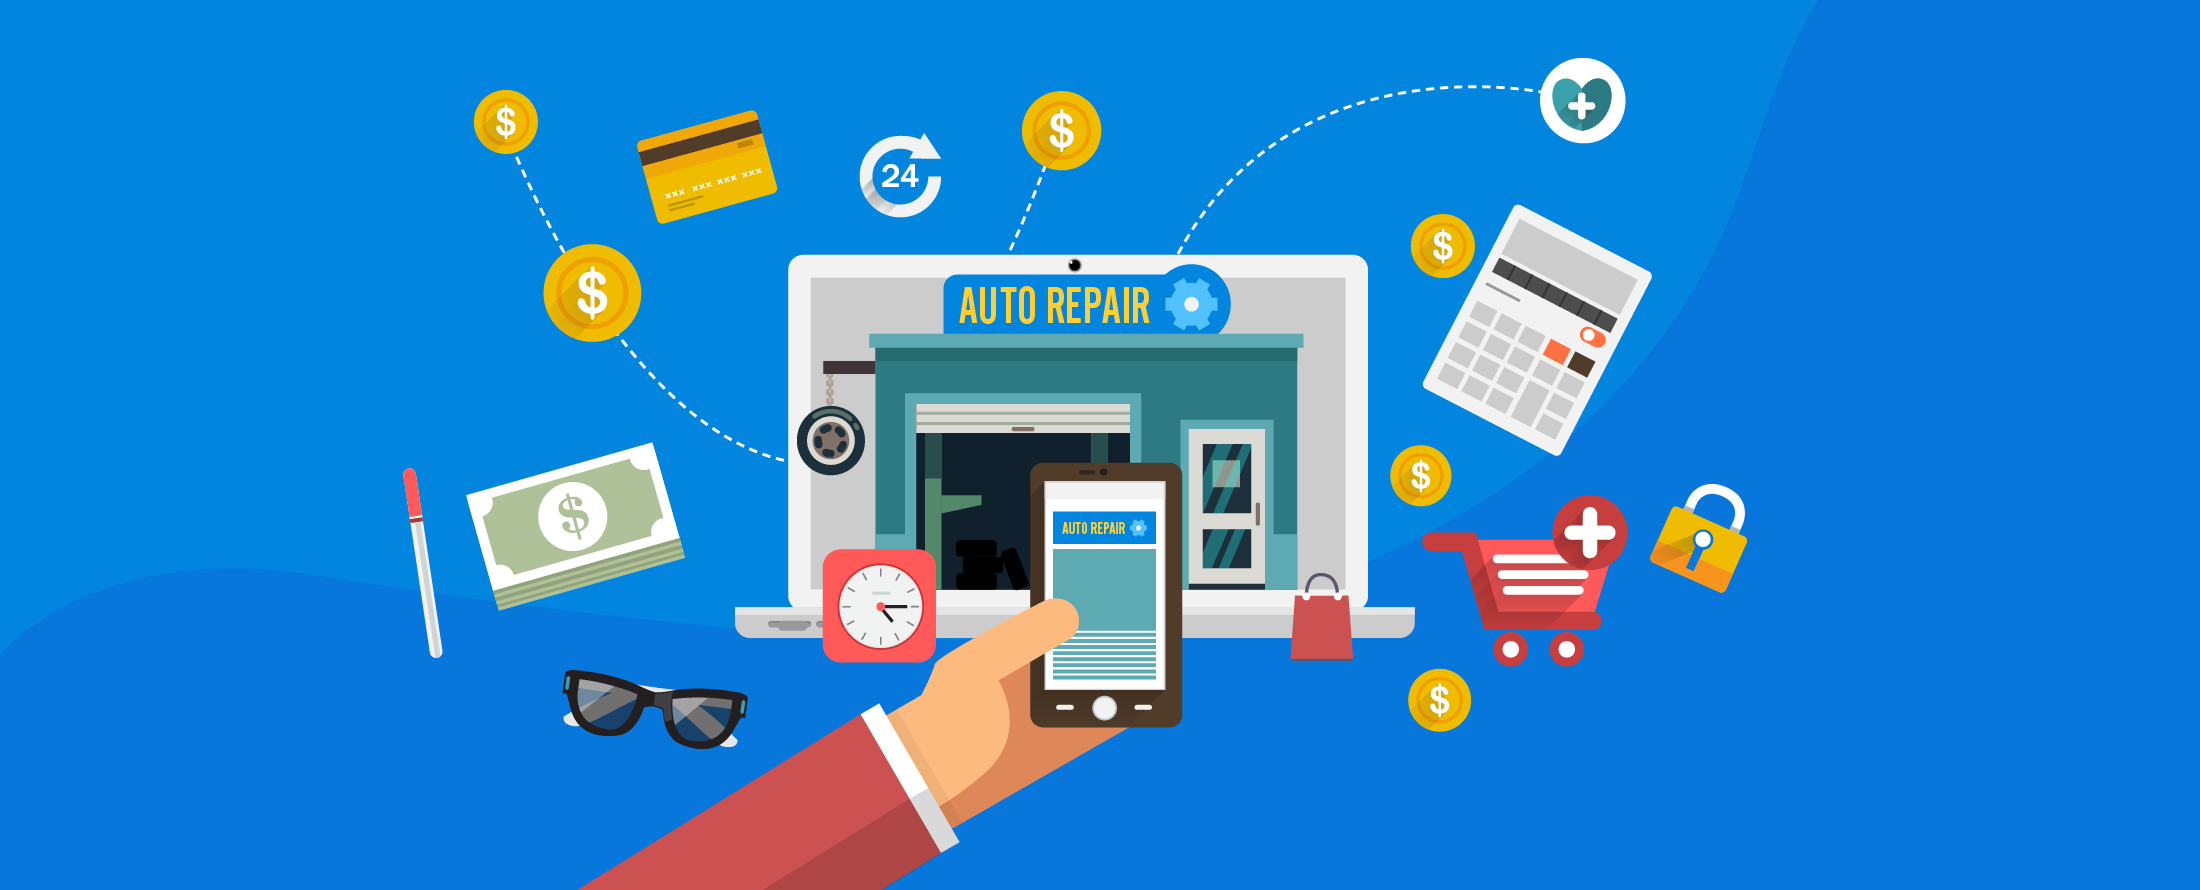 RocketLevel_Ultimate Guide to E-Commerce For Auto Repair Shops